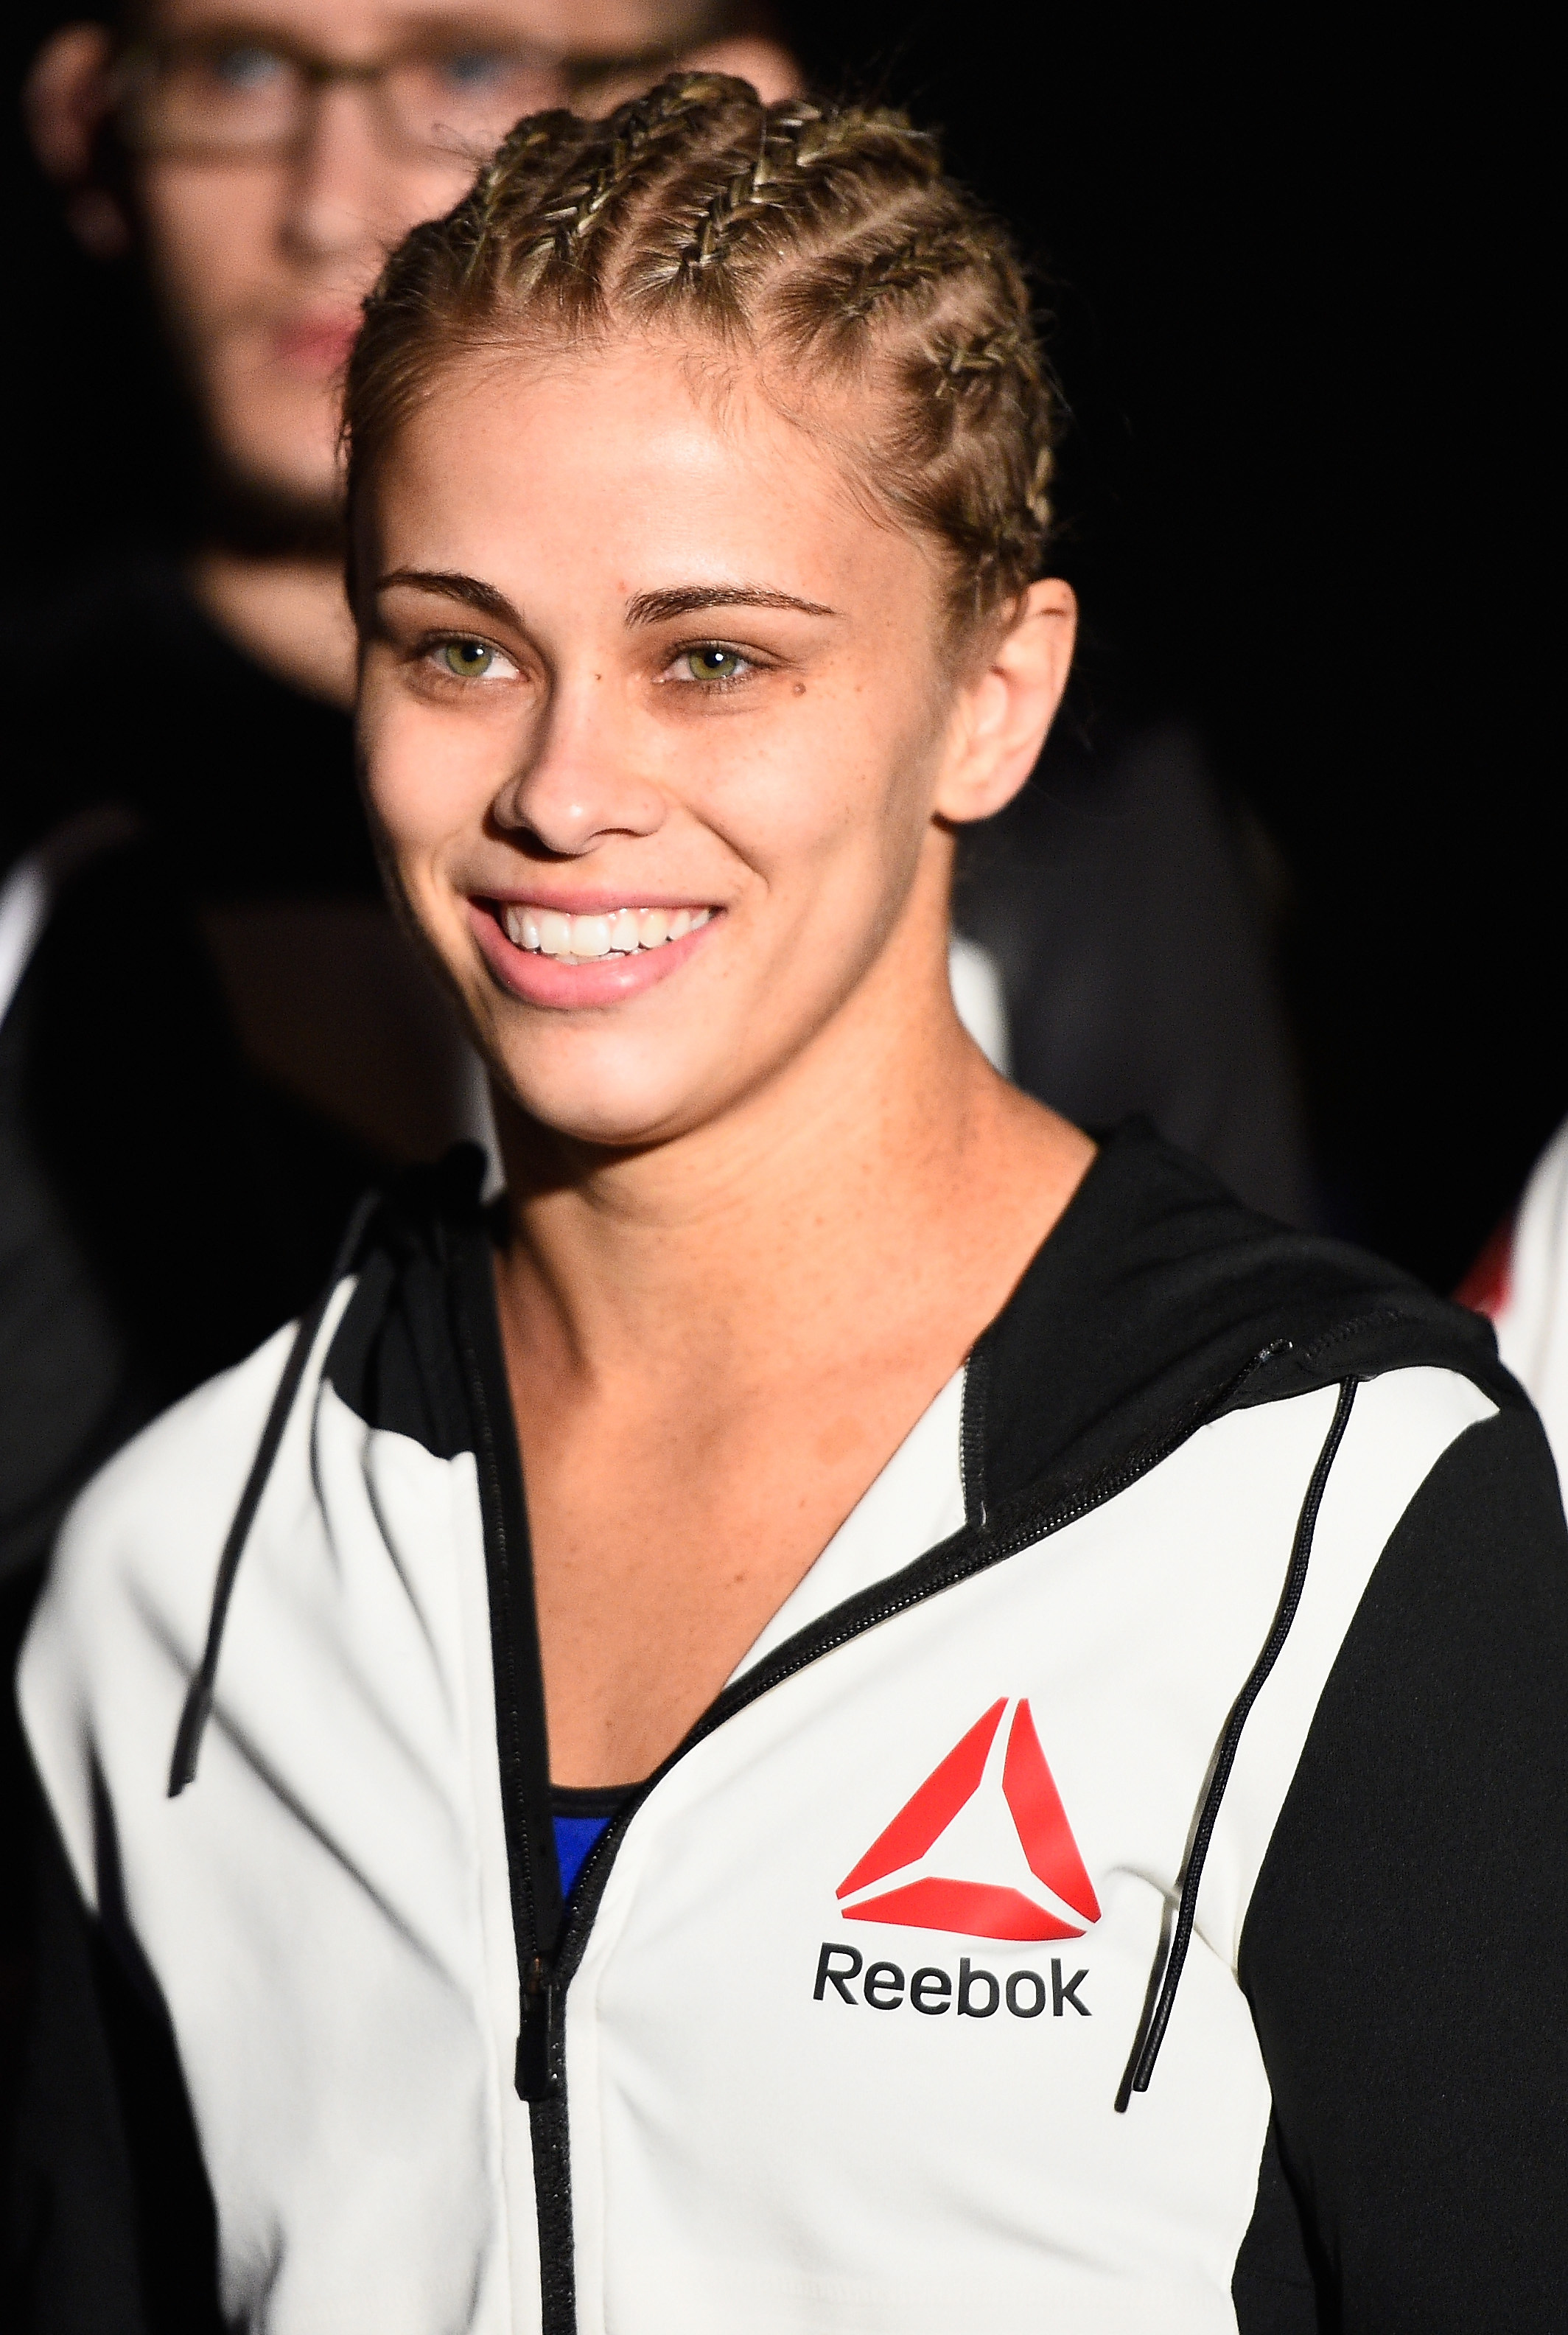 Paige VanZant walks to the Octagon to face <a href='../fighter/Alex-Chambers'>Alex Chambers</a> in their women's strawweight bout during the UFC 191 event inside MGM Grand Garden Arena on September 5, 2015 in Las Vegas, Nevada. (Photo by Jeff Bottari/Zuffa LLC)